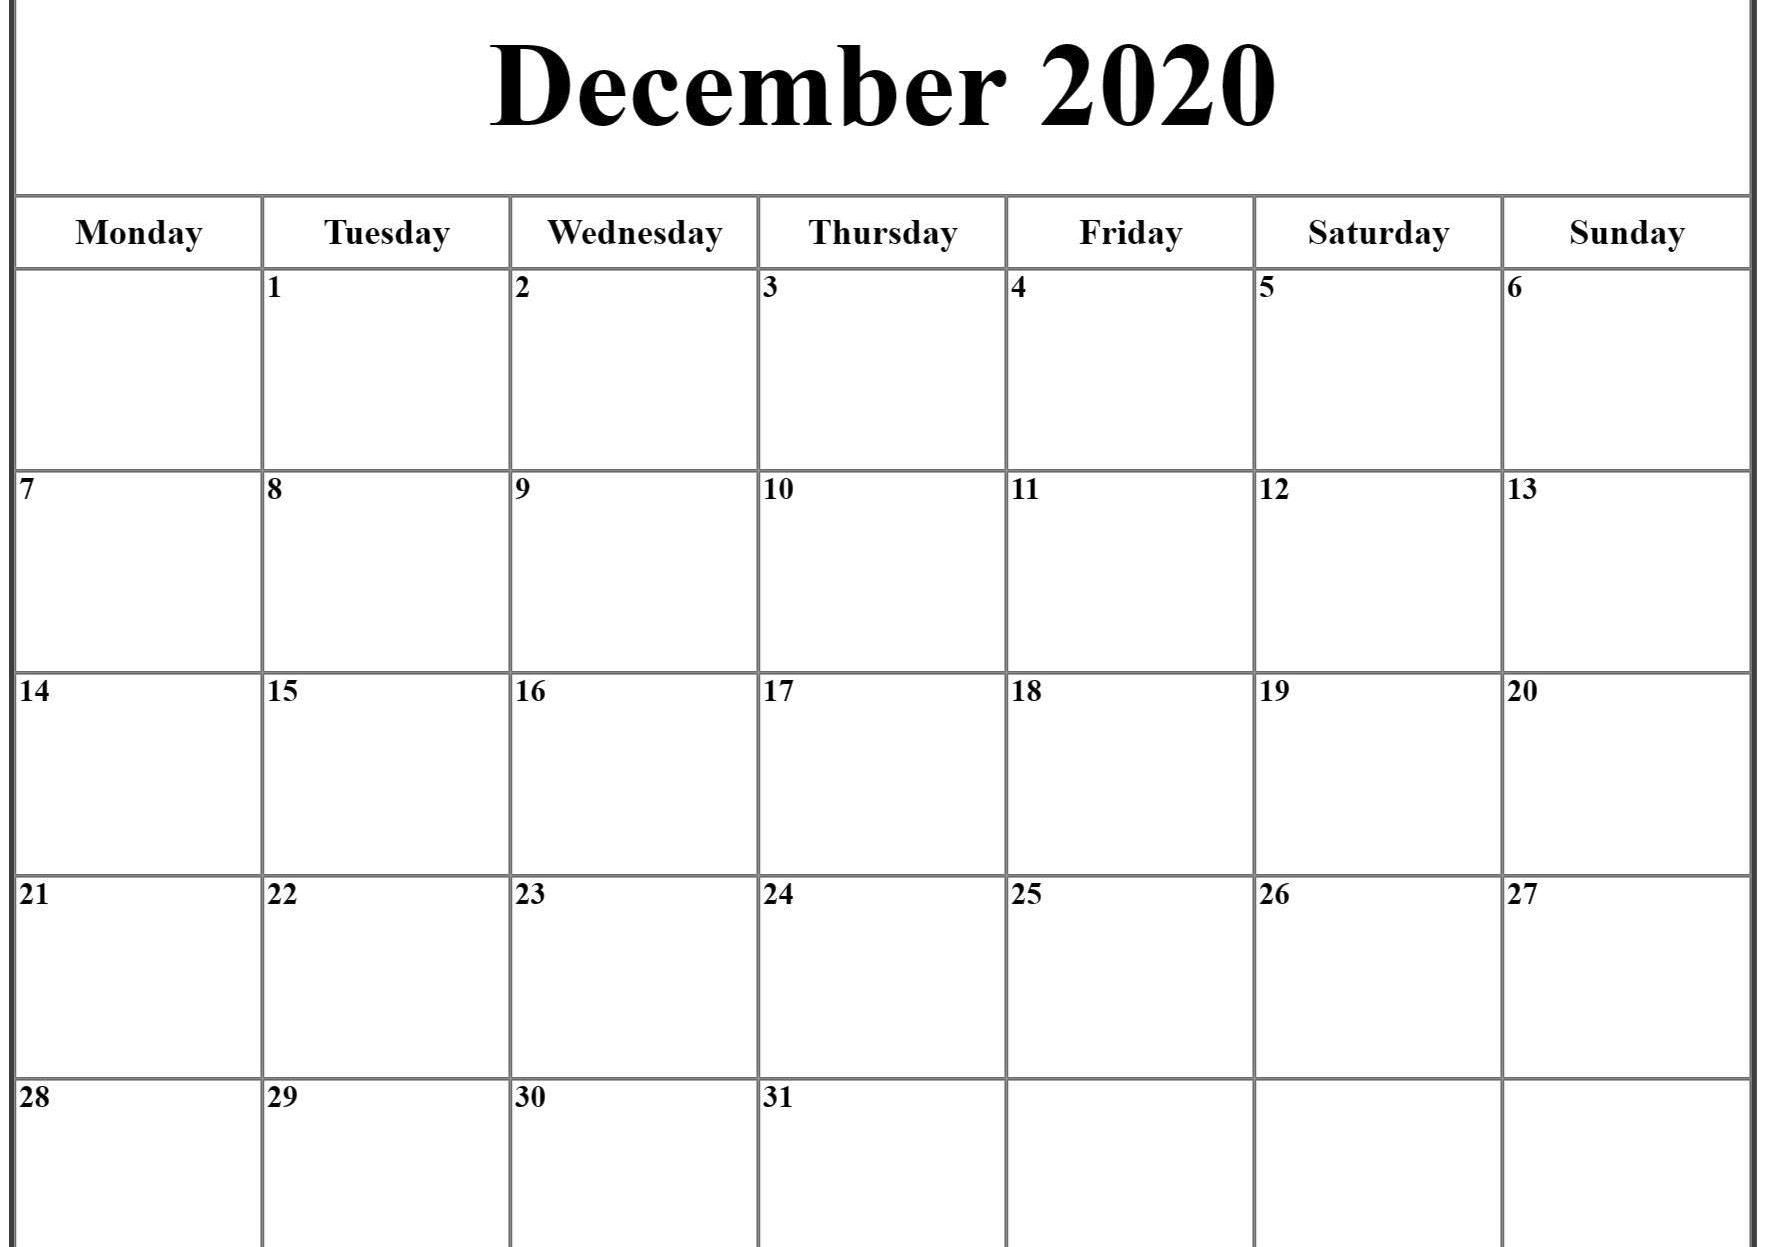 December 2020 Calendar Excel | December Calendar, Printable pertaining to Printable December Calender 2020